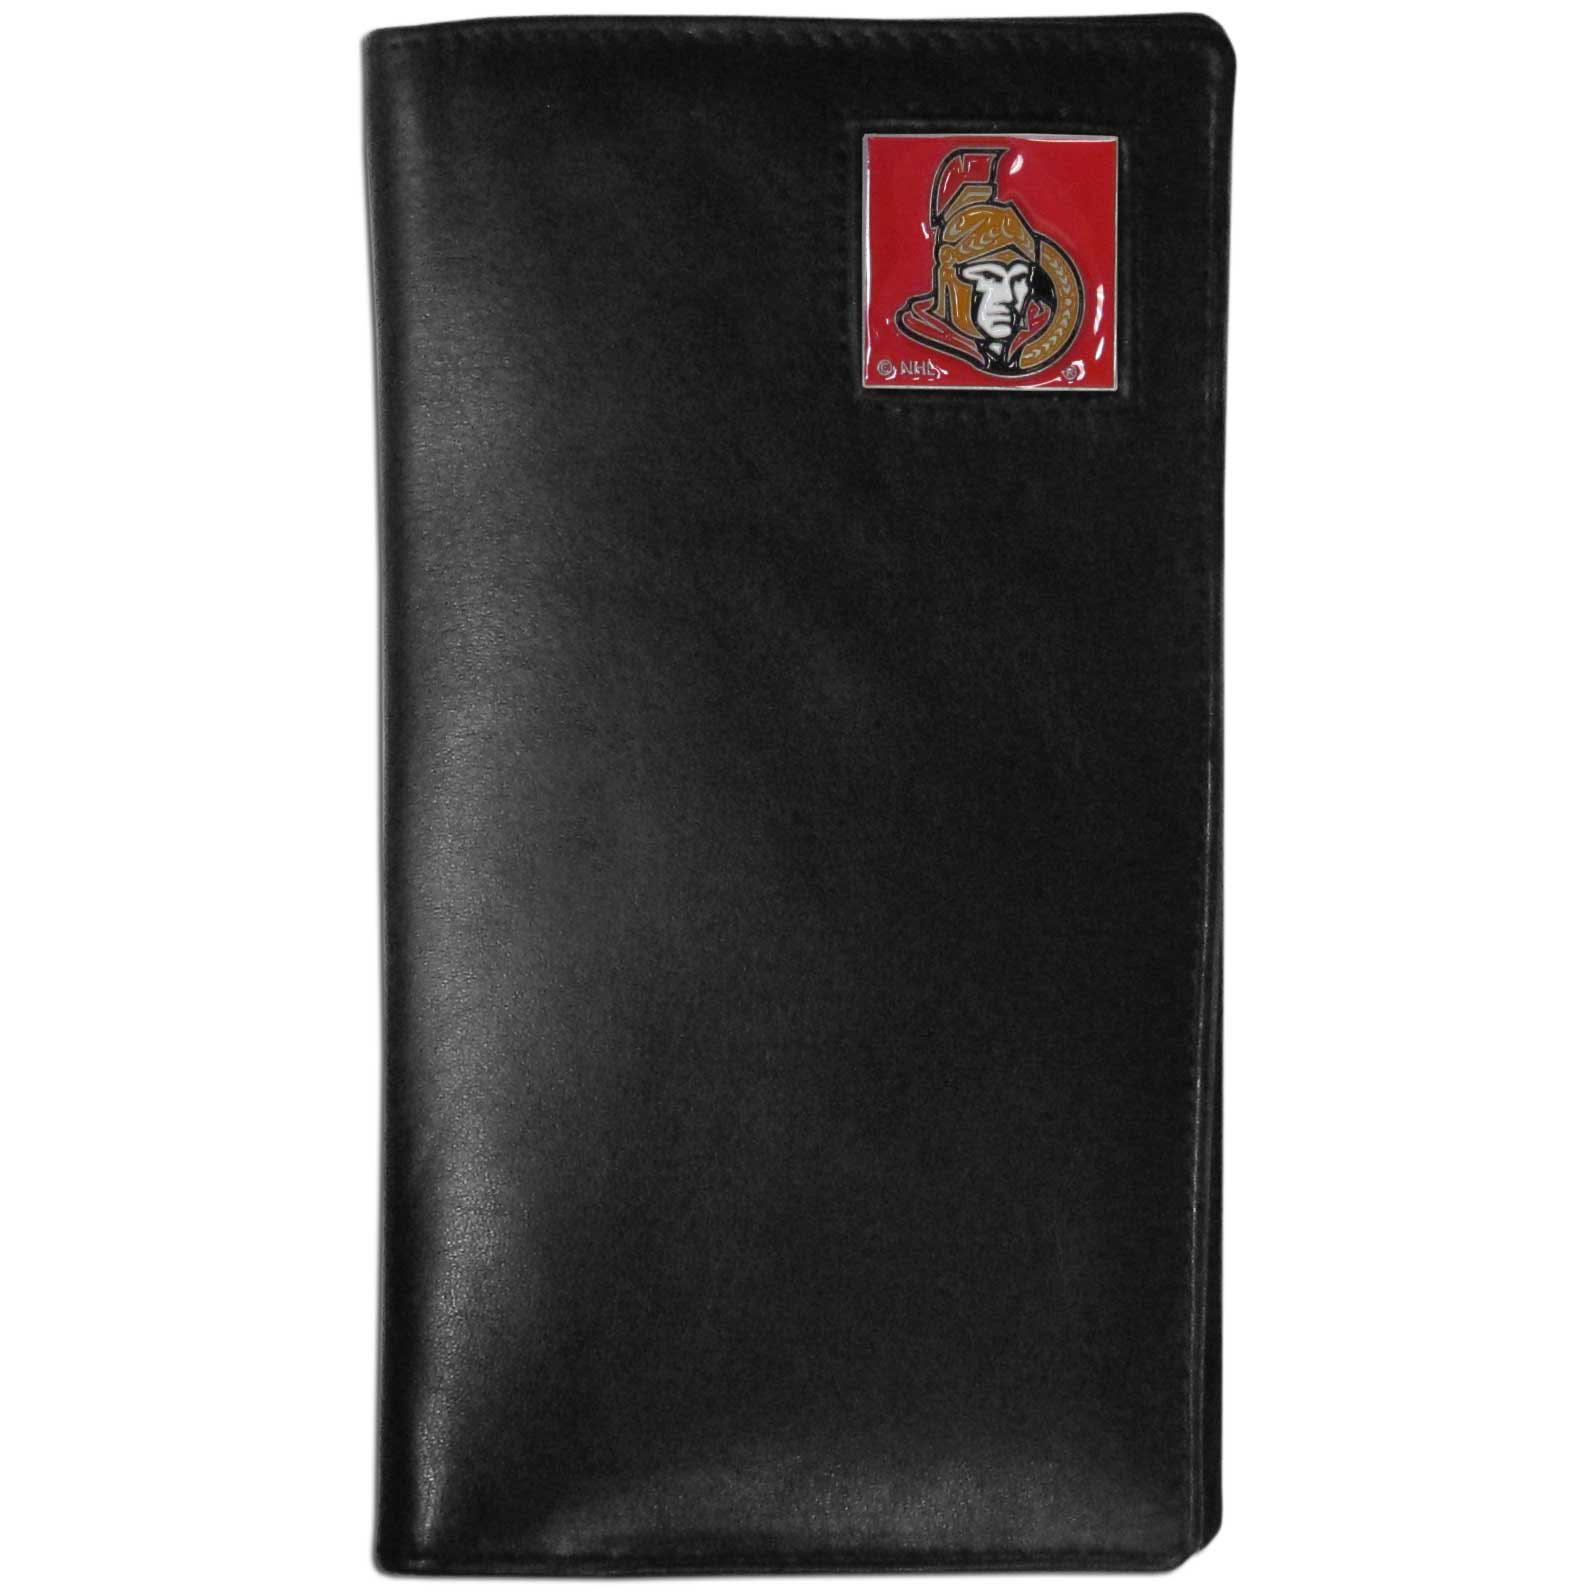 Ottawa Senators Tall Leather Wallet - This officially licensed Ottawa Senators tall leather wallet cover is made of high quality leather with a fully cast metal Ottawa Senators emblem with enameled Ottawa Senators color detail. The cover fits both side and top loaded checks and includes a large zippered pocket, windowed ID slot, numerous credit card slots and billfold pocket. Thank you for visiting CrazedOutSports